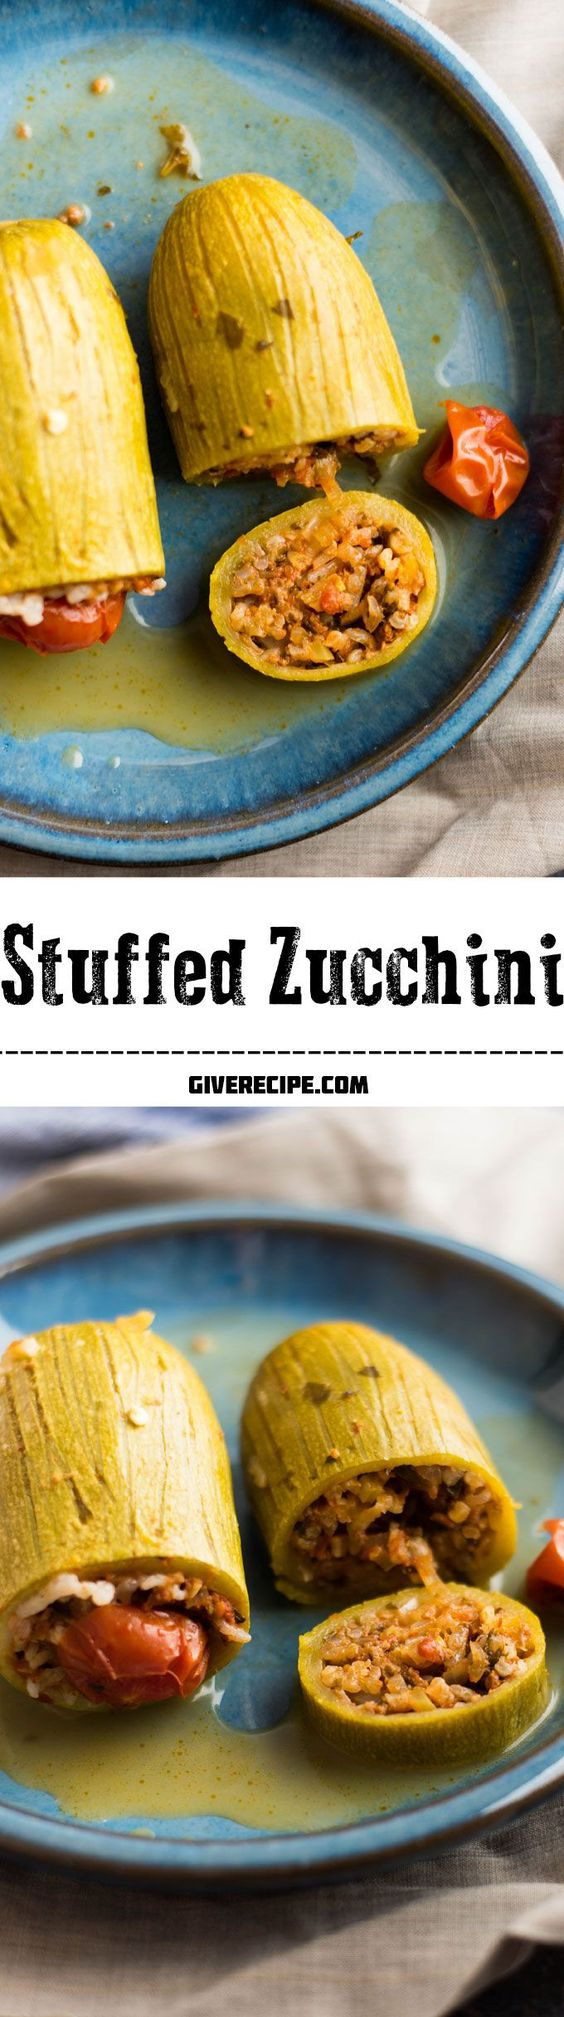 The BEST thing to make with zucchini is to stuff it. This zucchini is stuffed with a spicy mixture of rice and ground beef. You can turn it into a great vegan recipe by leaving the ground beef out.   http://giverecipe.com   #zucchini